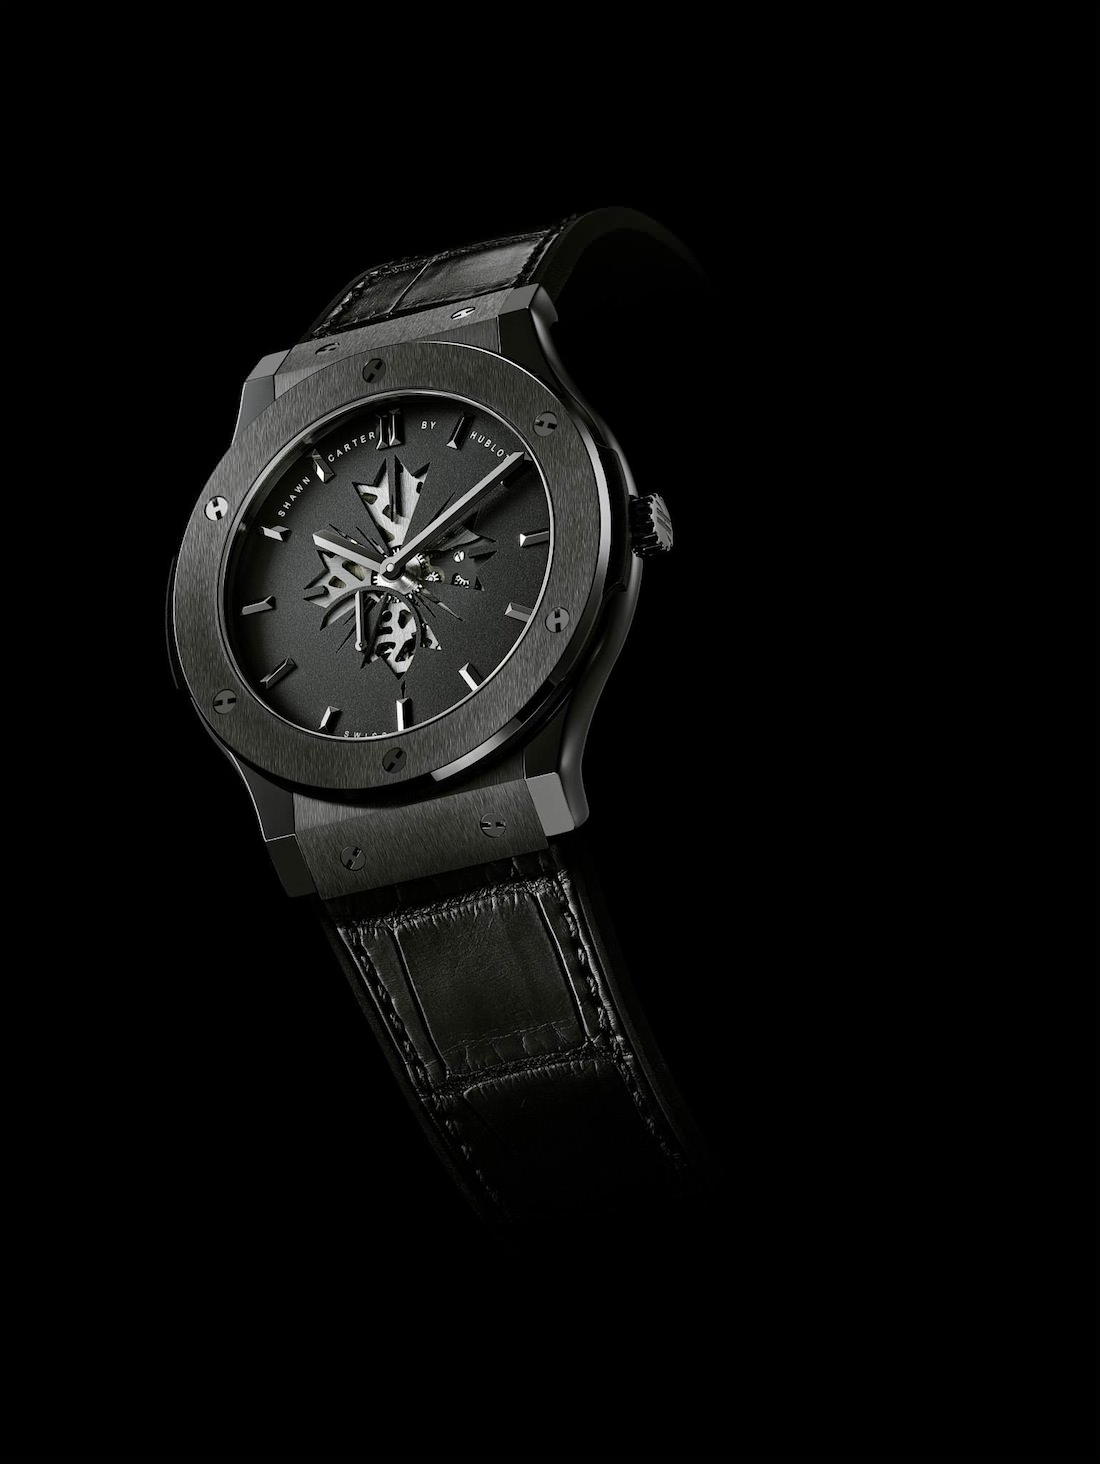 Hublot-Shawn-Carter-jayz-01